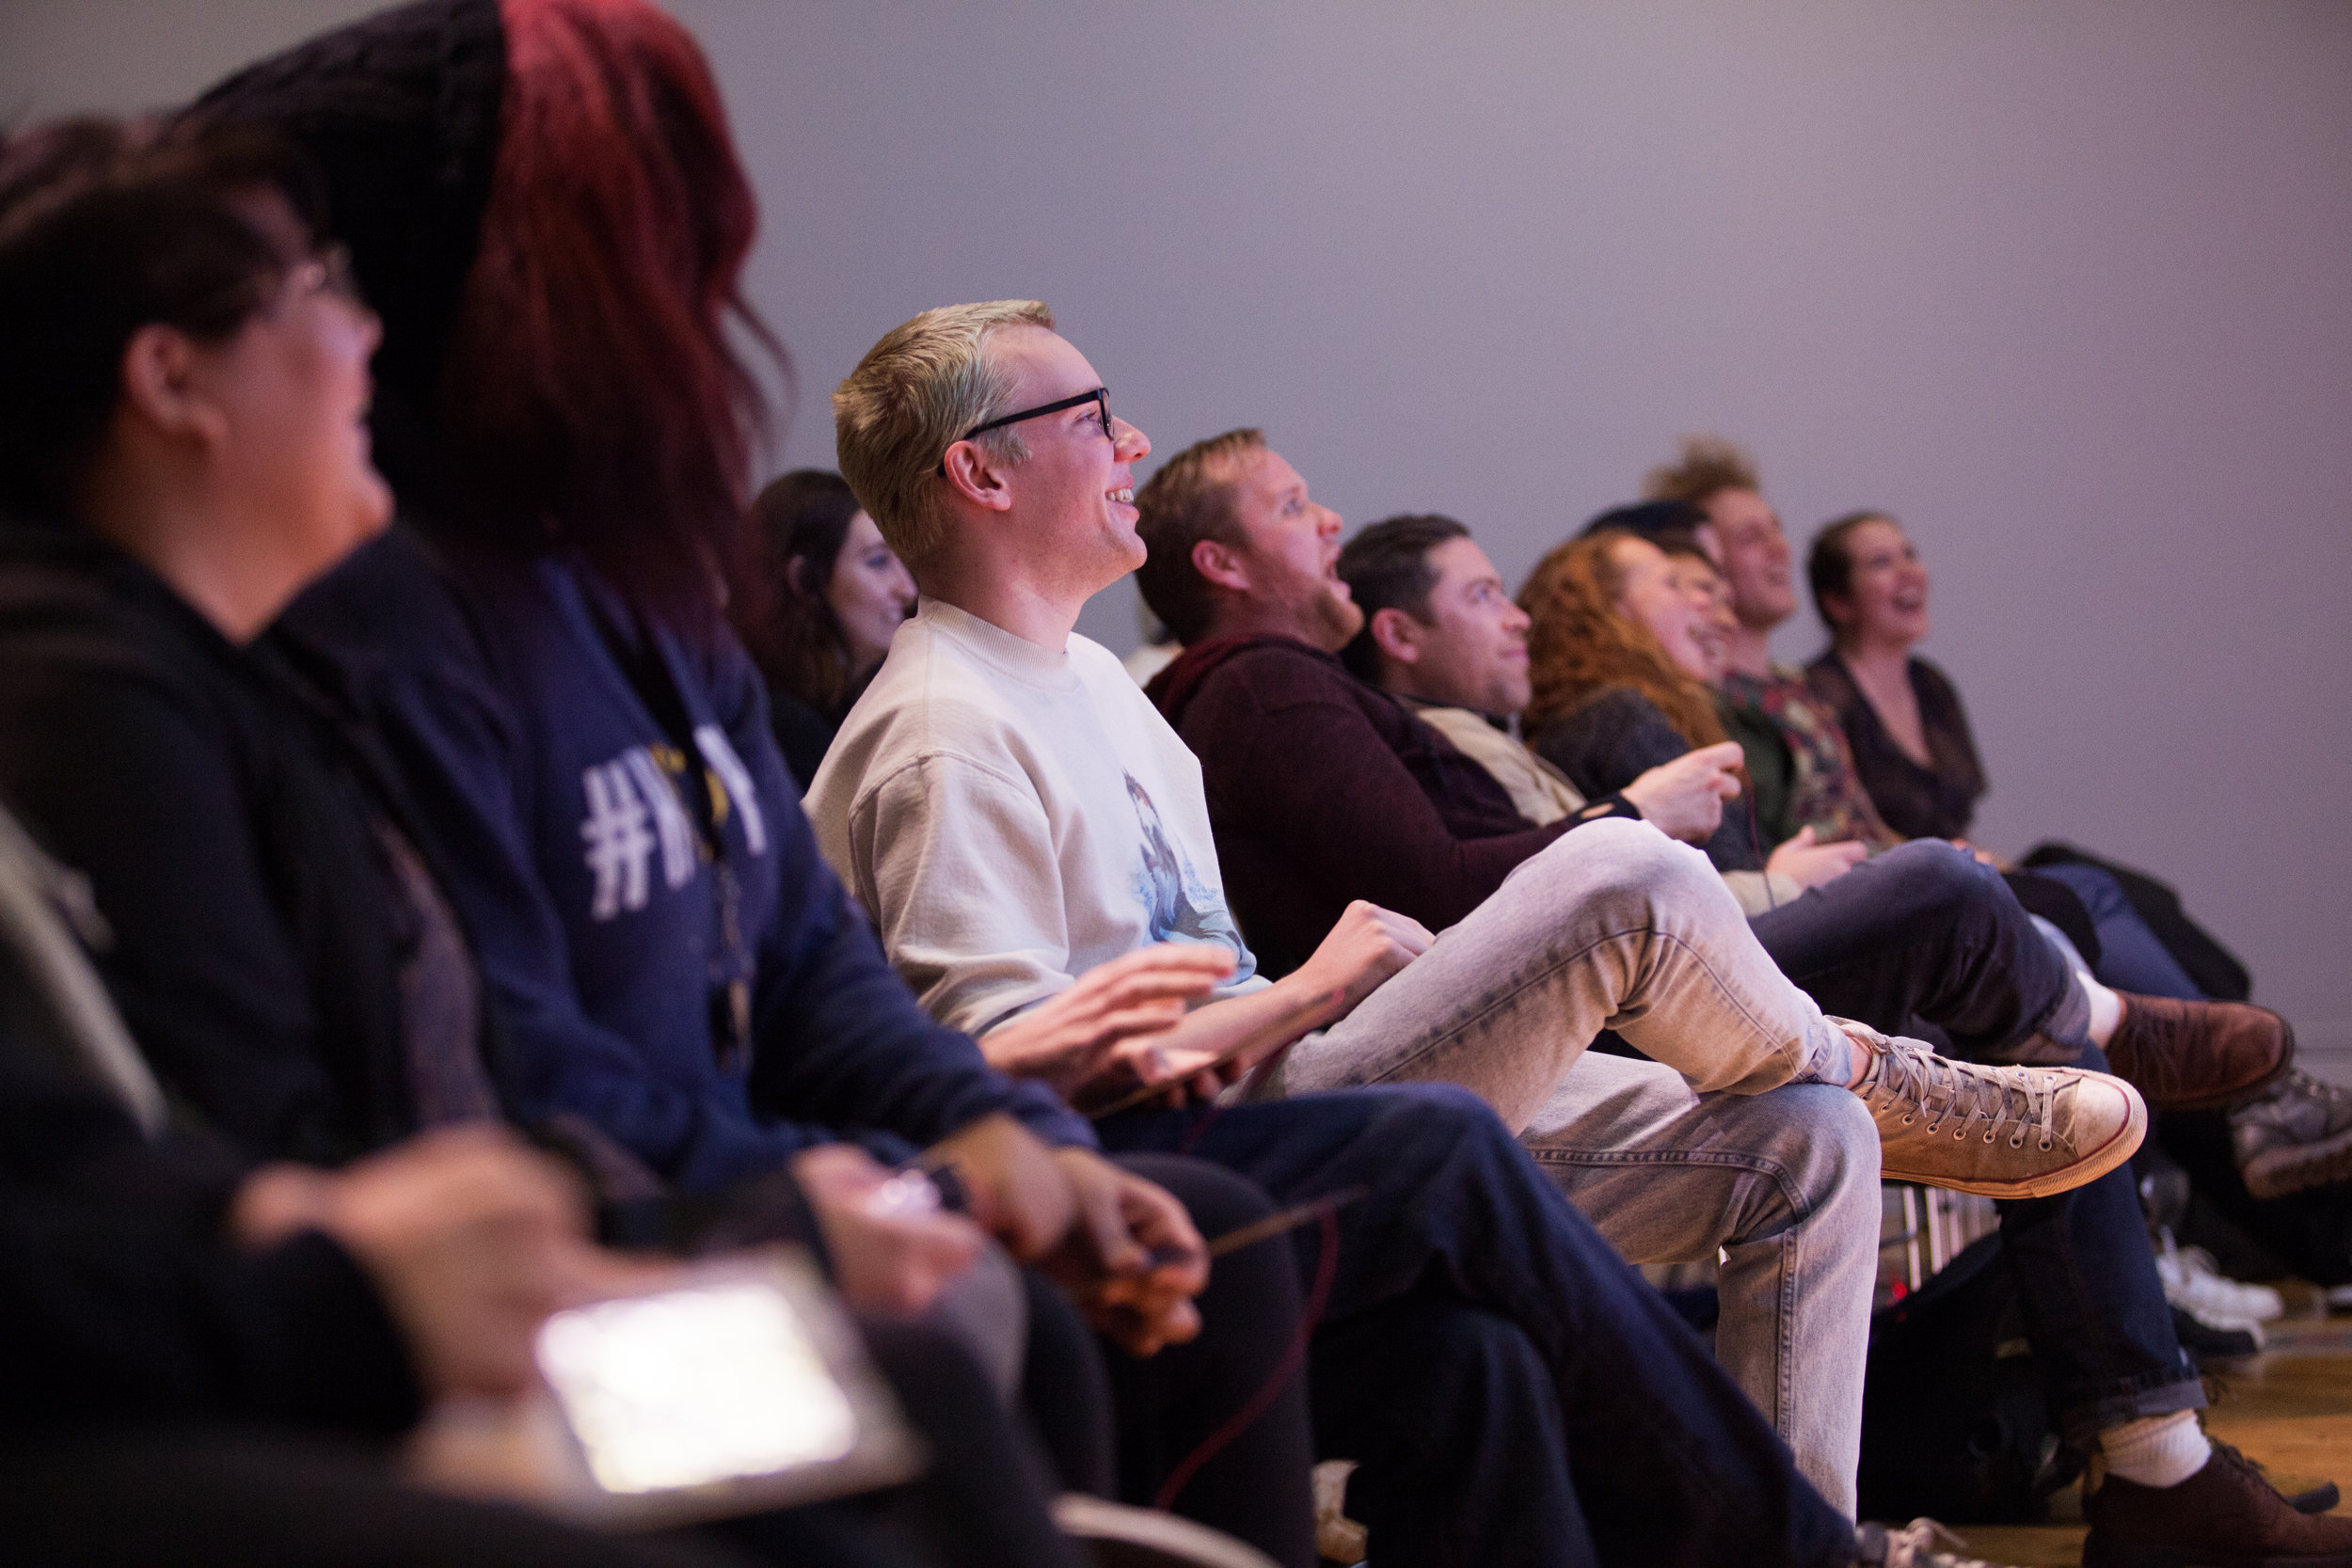 Engaged Audience - We draw upon a diverse pool of Portland talent to keep our audiences entertained and stimulated. Show Show experiences feature several mediums, including stand up comedy, virtual reality, animation, crowd gaming, augmented reality, and live music.